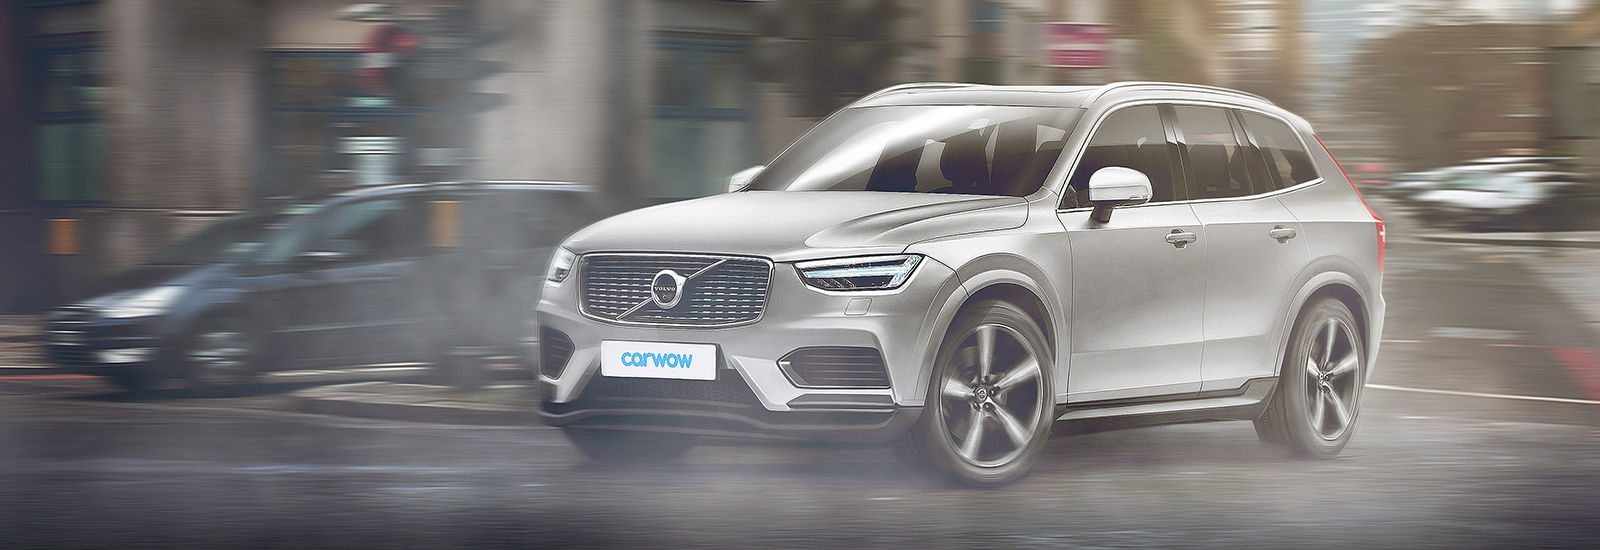 2018 Volvo Xc60 Price Specs And Release Date Carwow